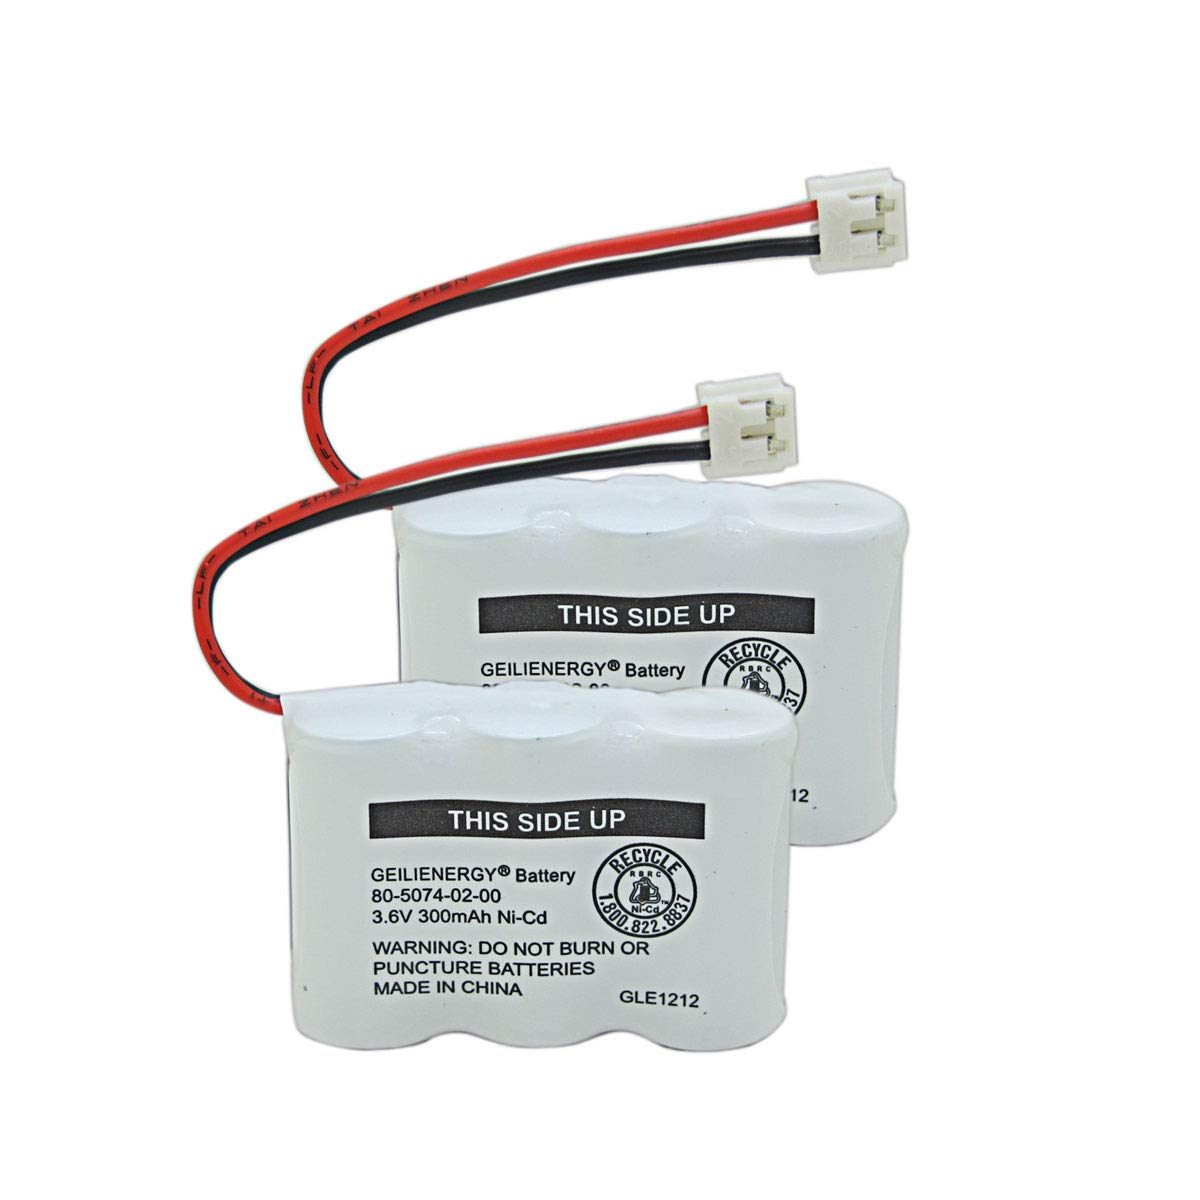 GEILIENERGY 2/3AA 3.6V NI-CD Cordless Phone Battery Compatible with at&T 2422 80-5074-00-00 1165 4200 E1802(2 Pack)